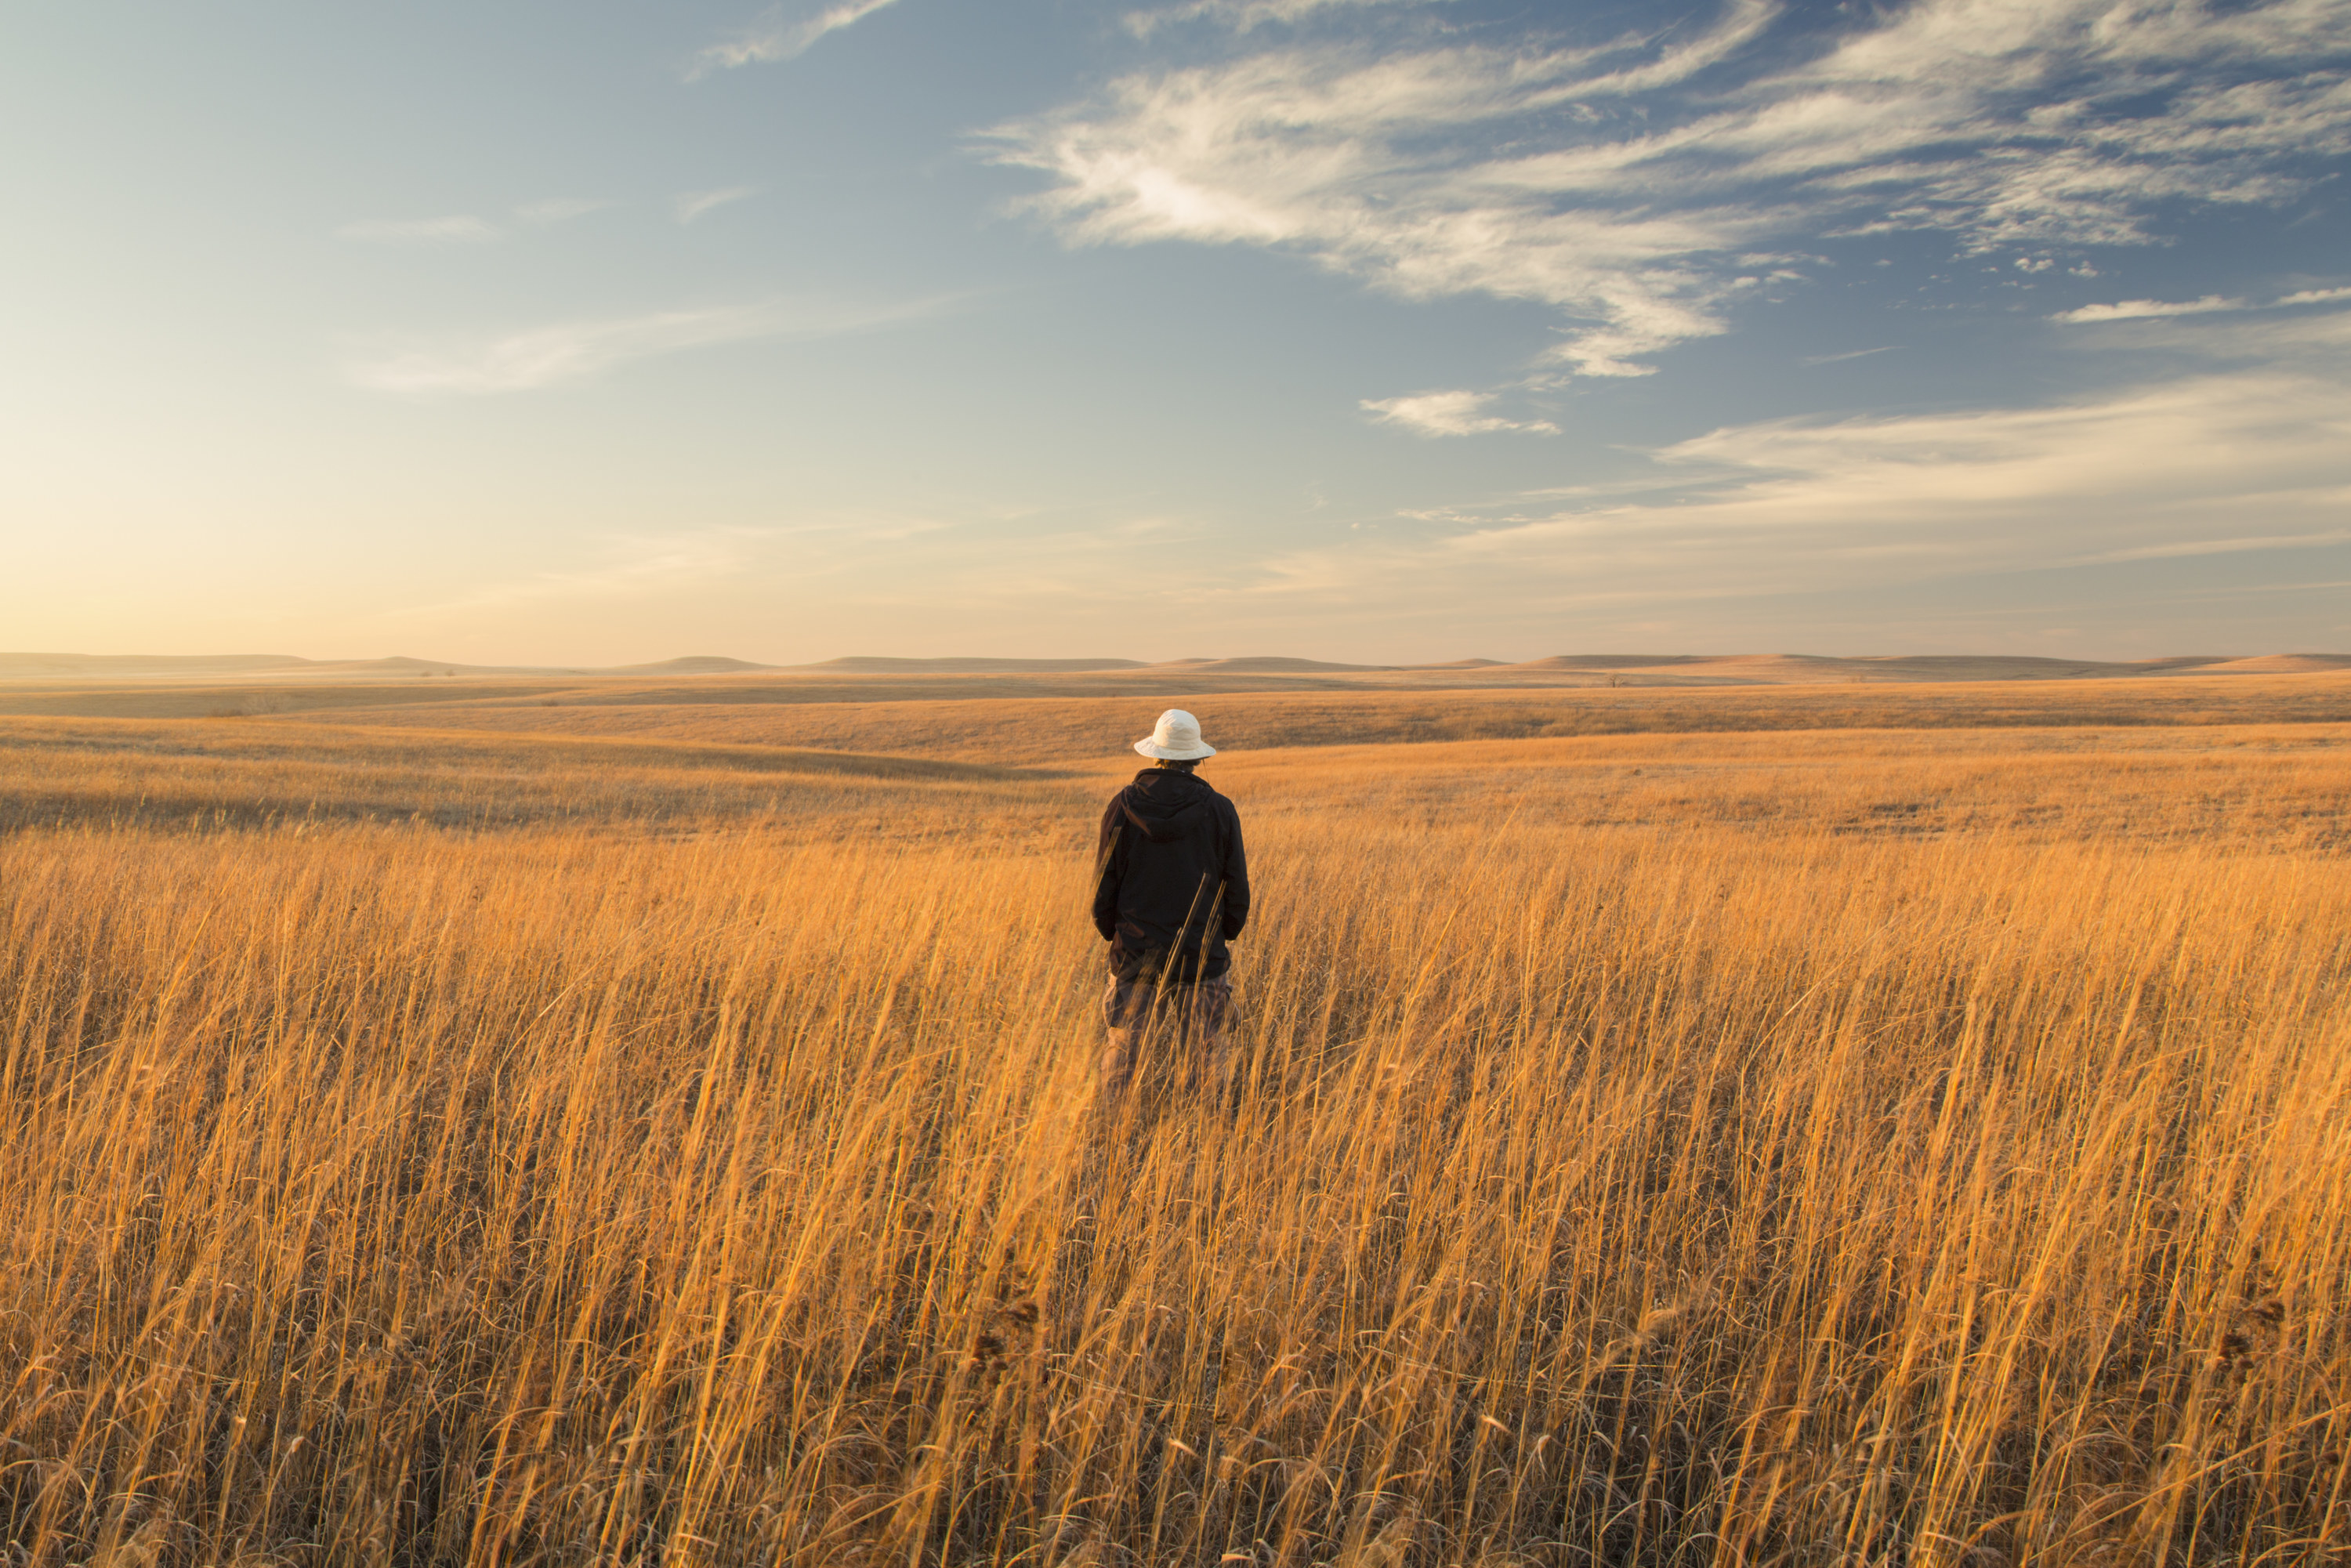 A person with their back turned looks out onto the serene Tallgrass Prairie.